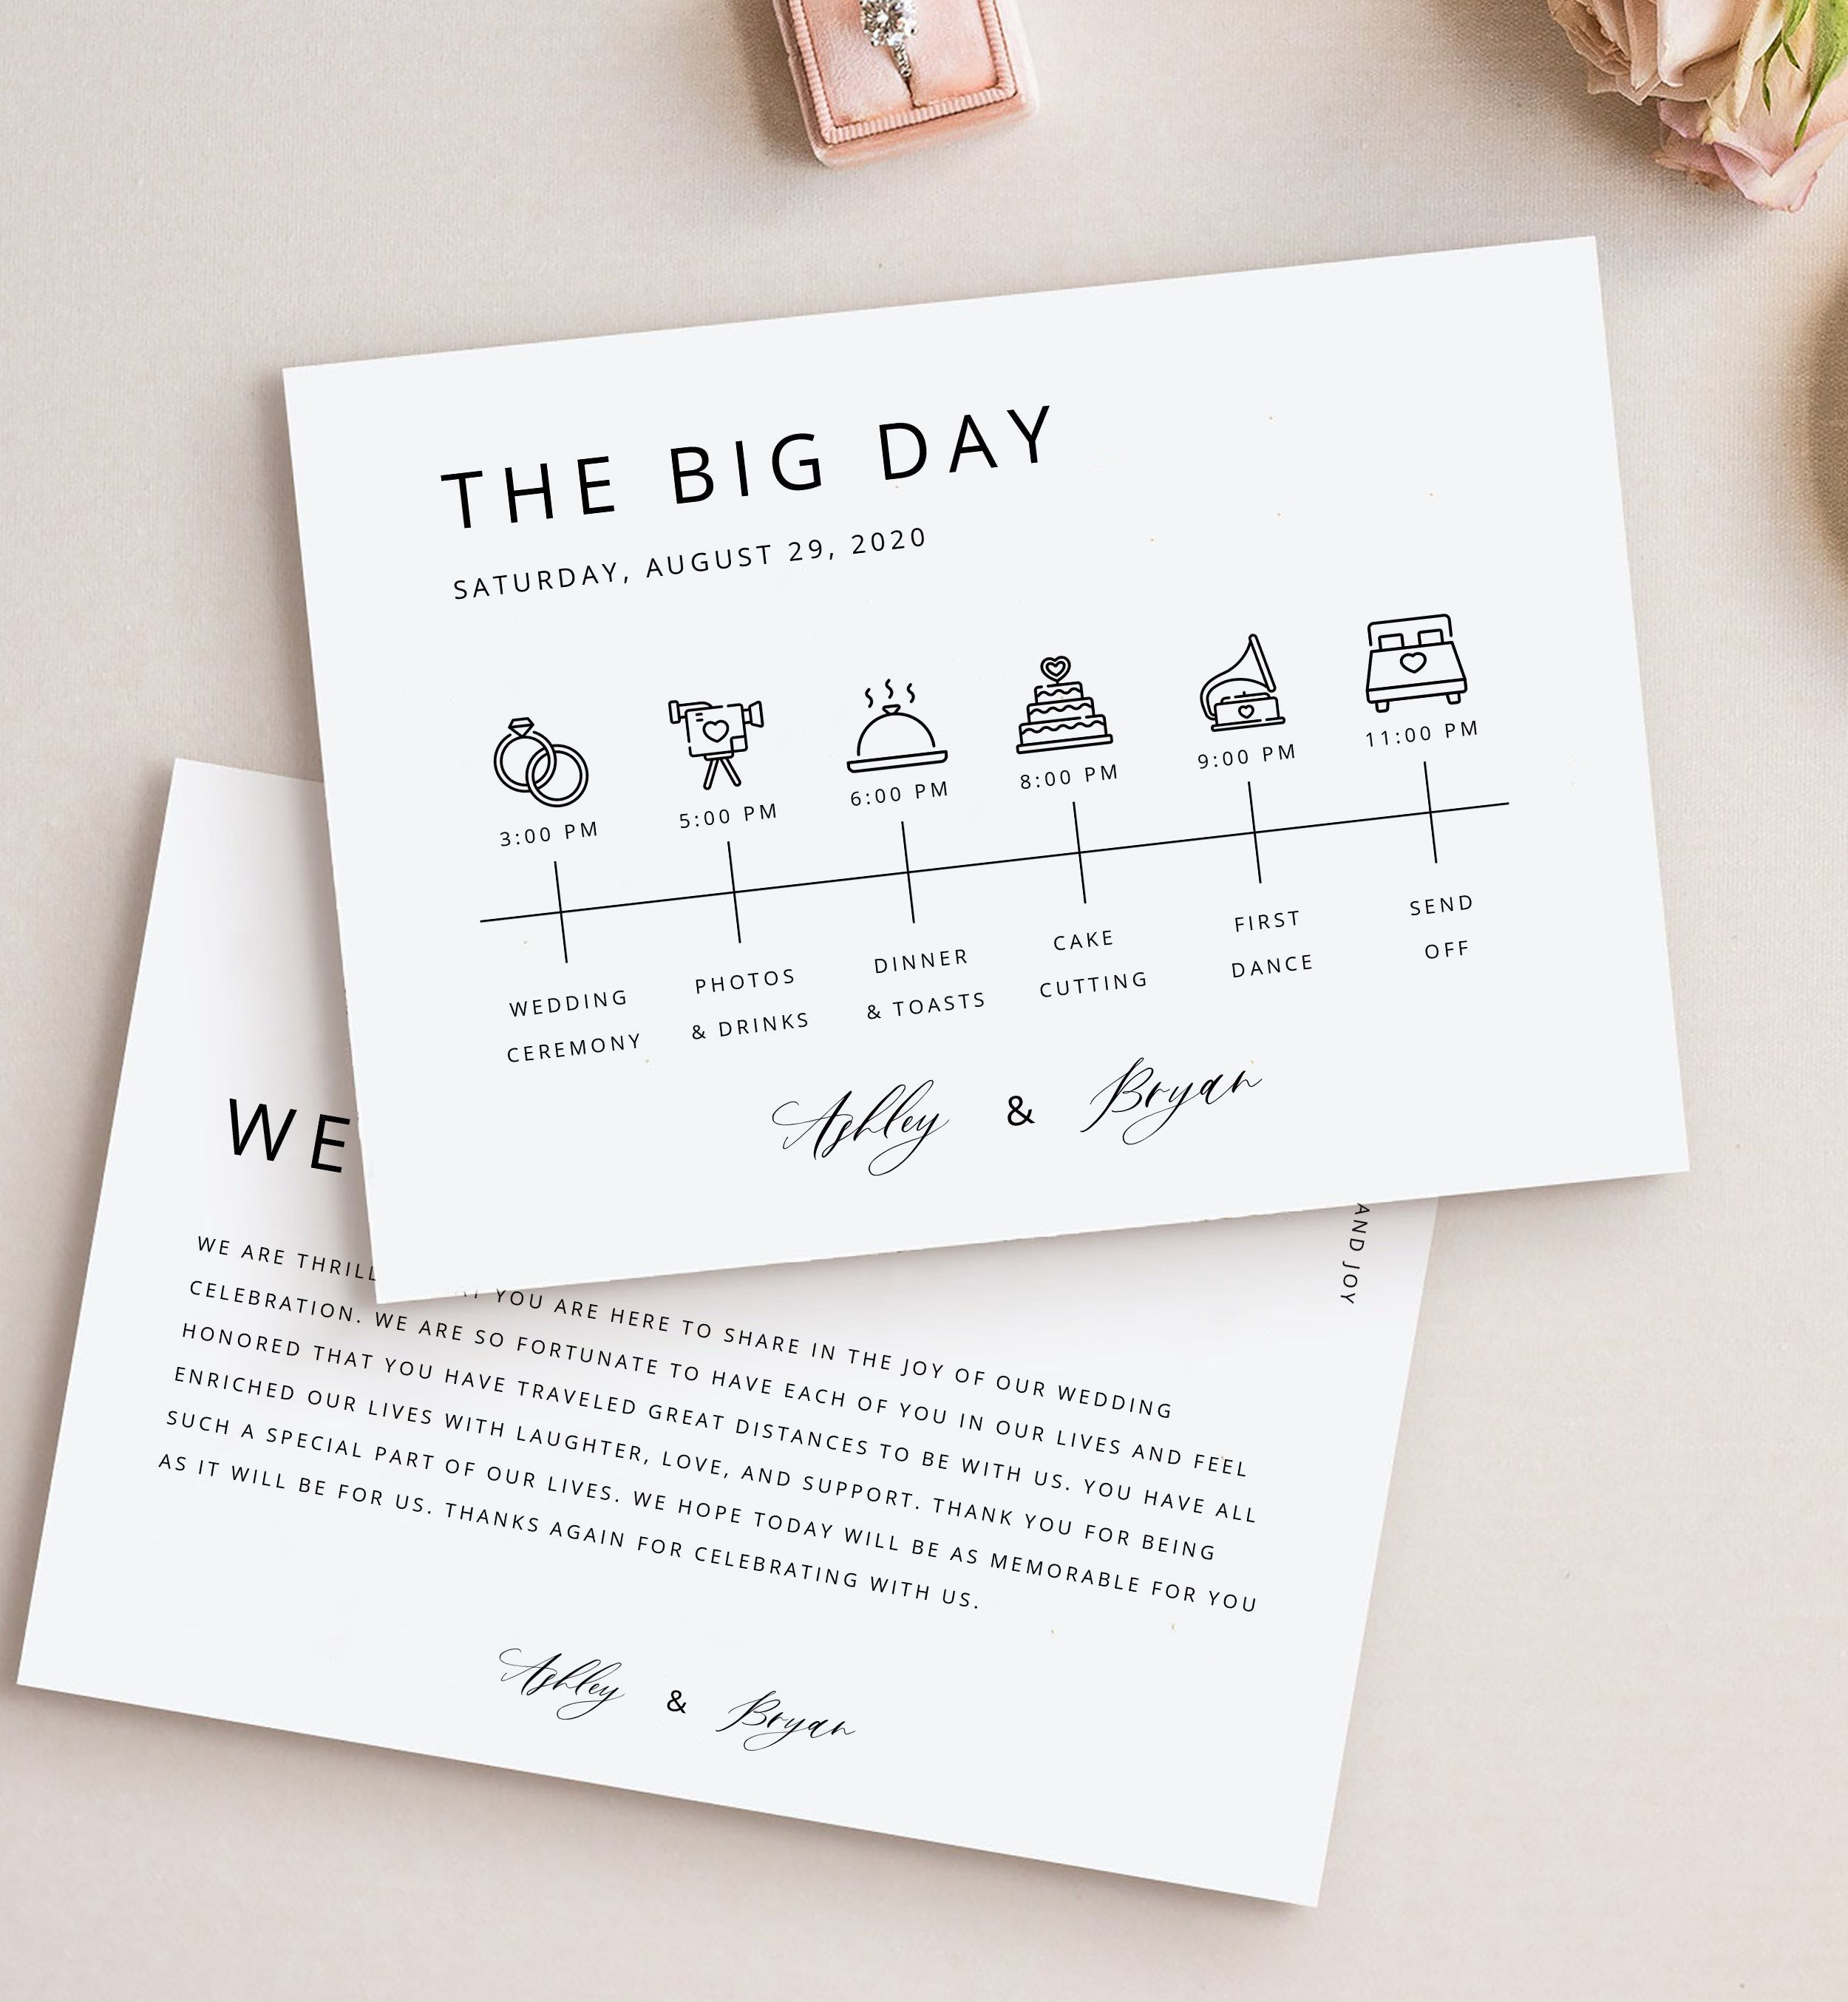 Modern Minimalist Wedding Timeline Template Elegant Wedding Itinerary Download Printable Simple Wedding Itinerary Wedding Timeline Wedding Timeline Template